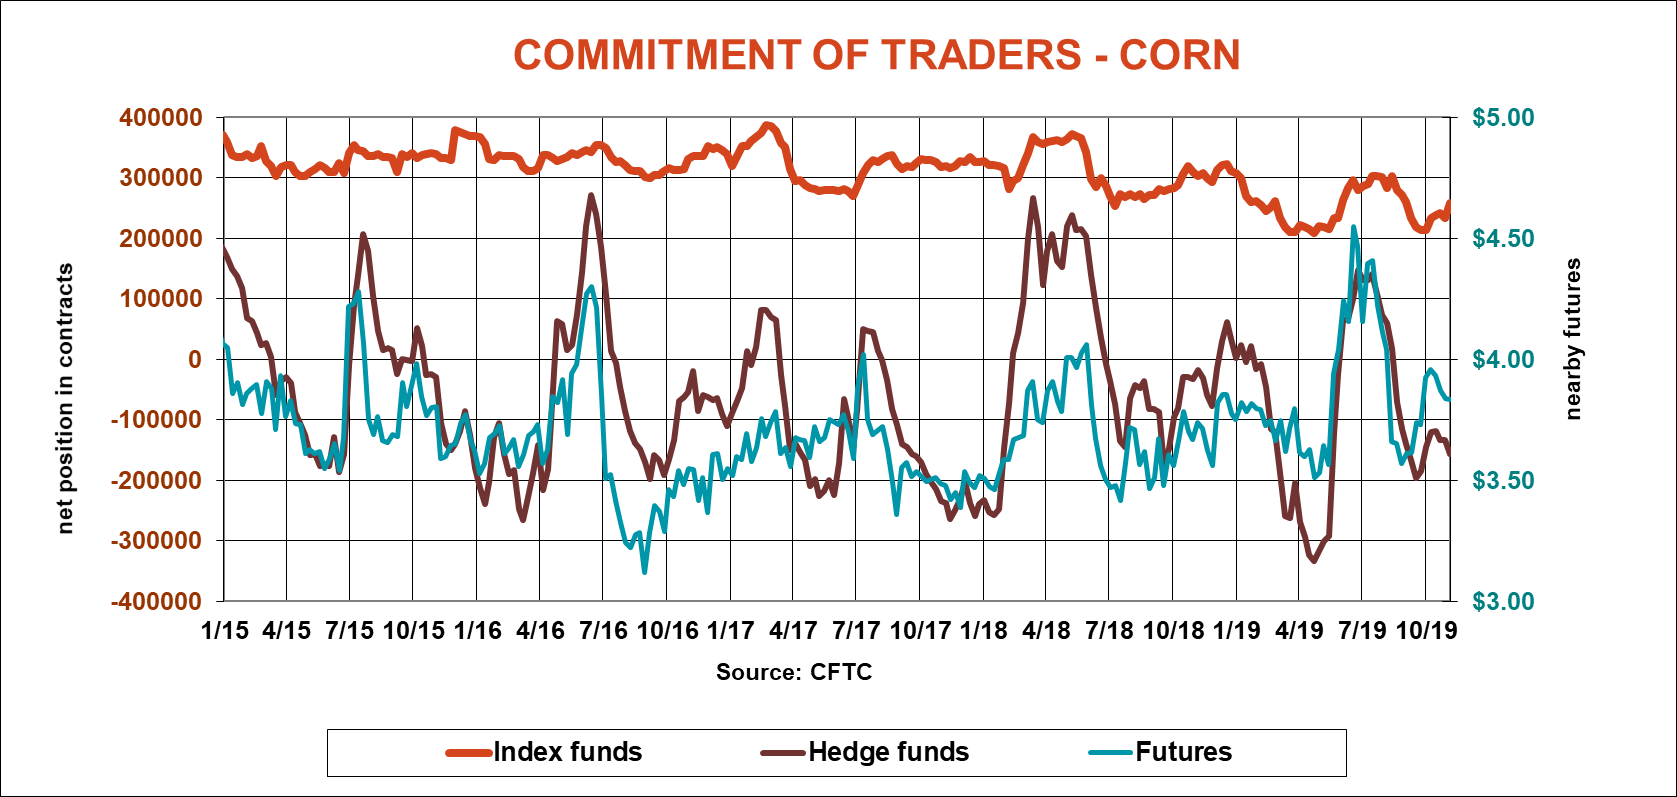 commitment-traders-corn-cftc-110819.png